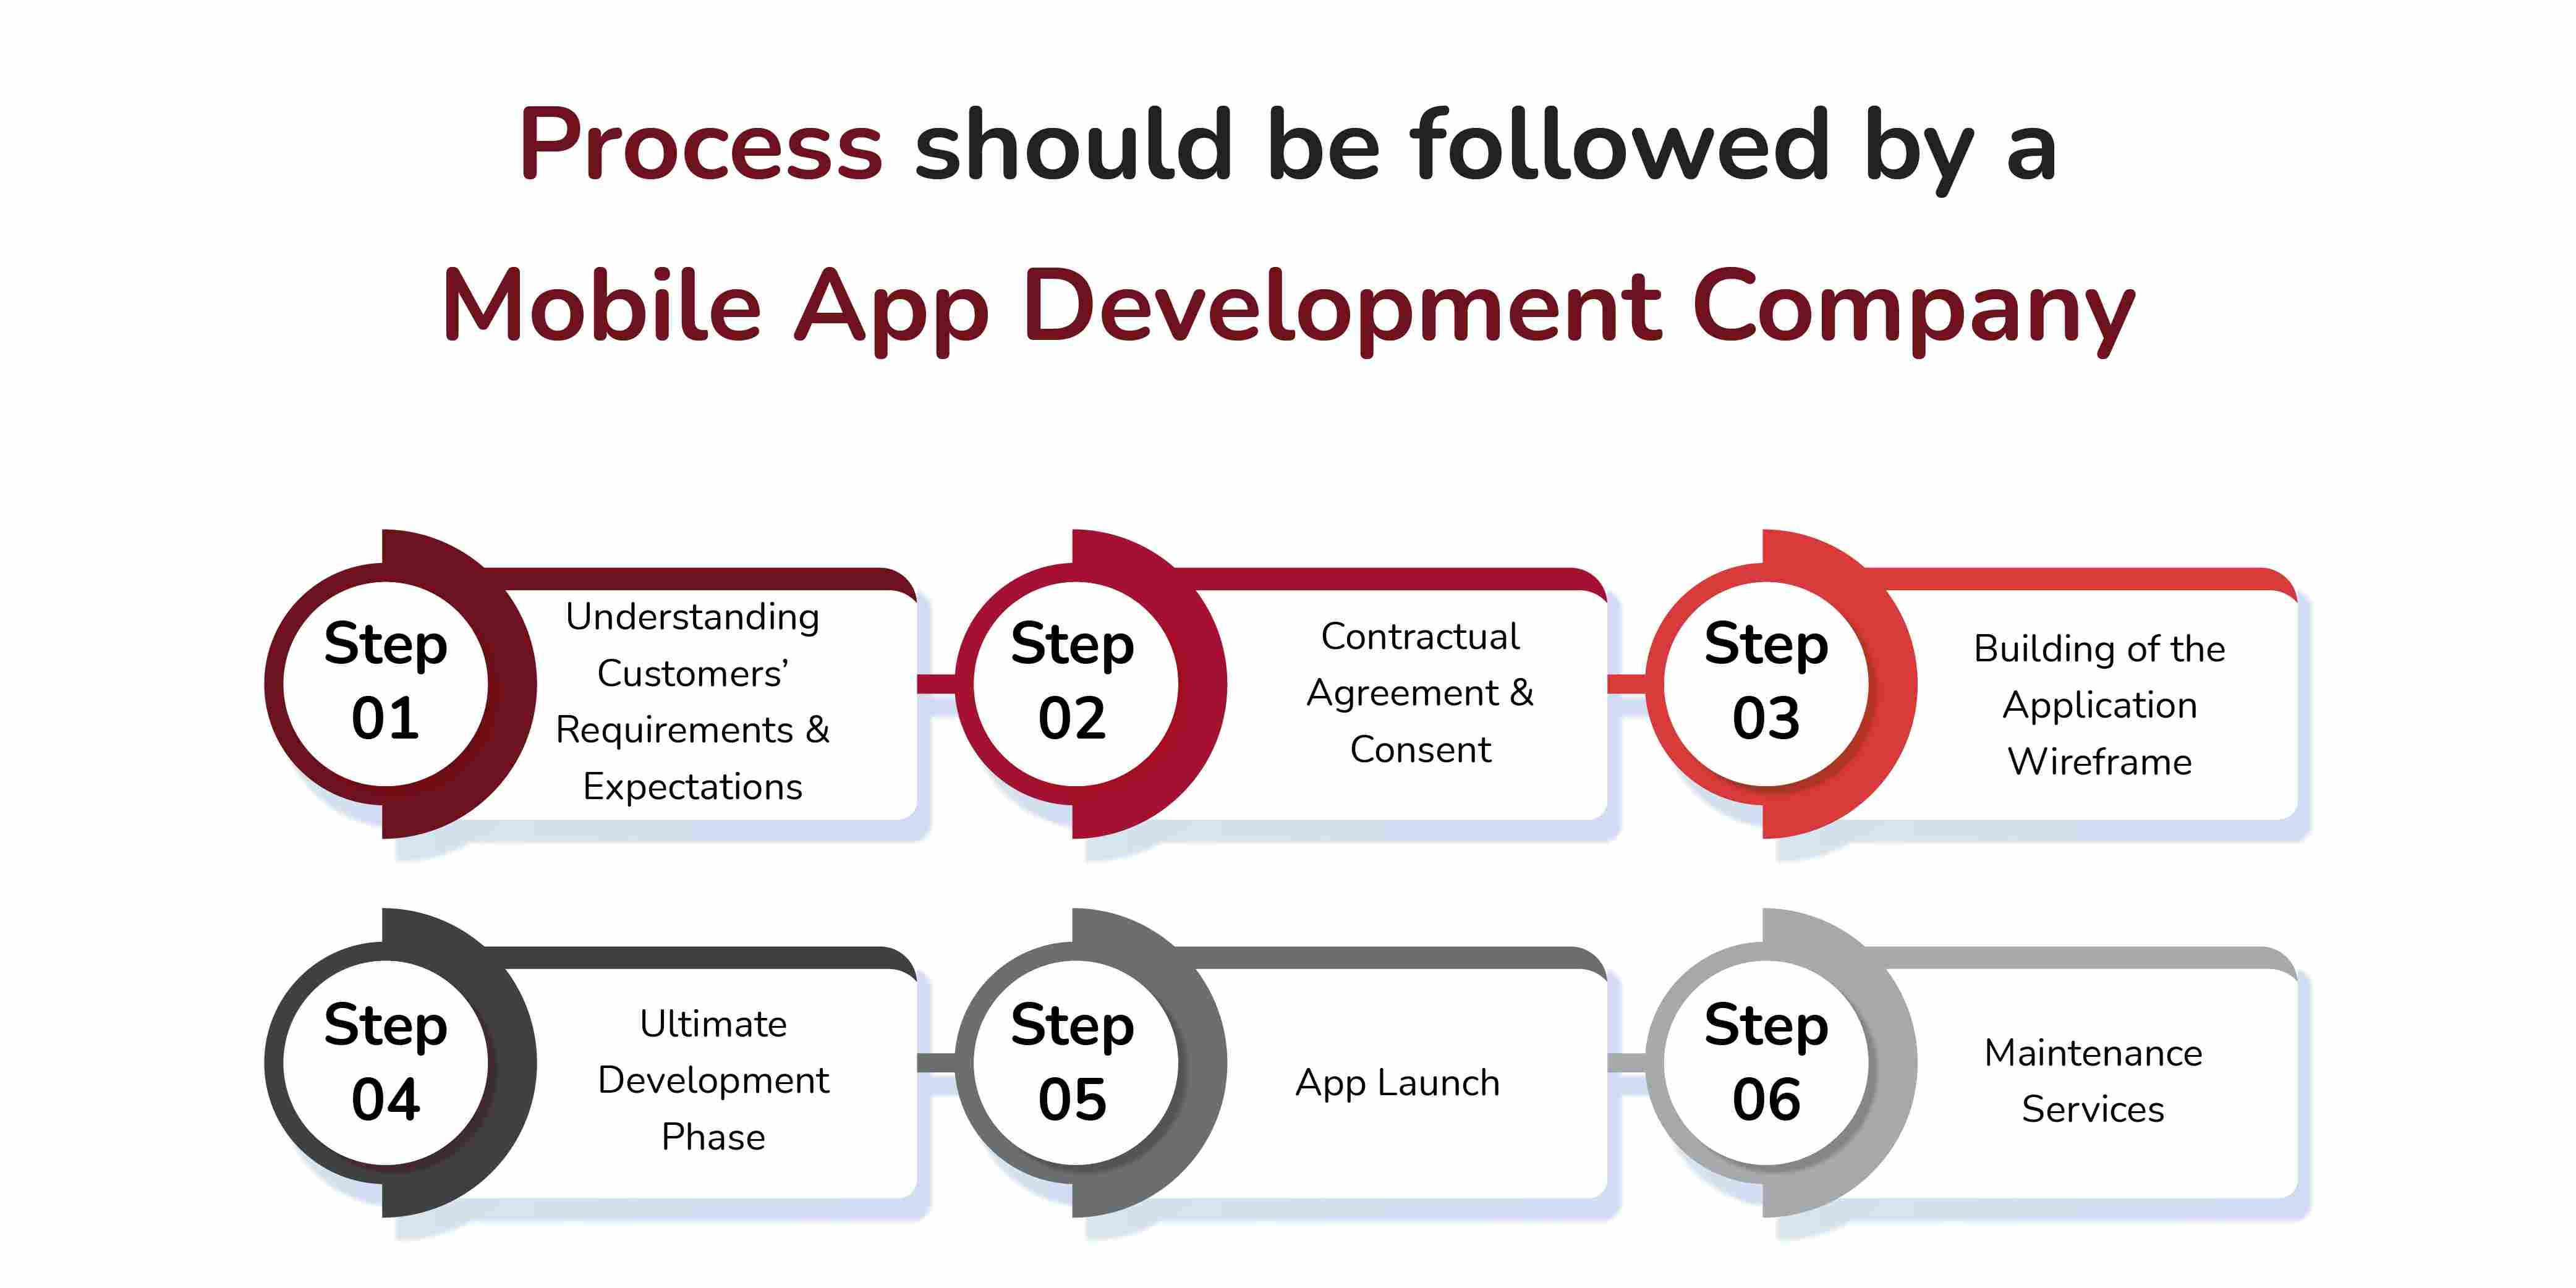 Process should be followed by a Mobile App Development Company